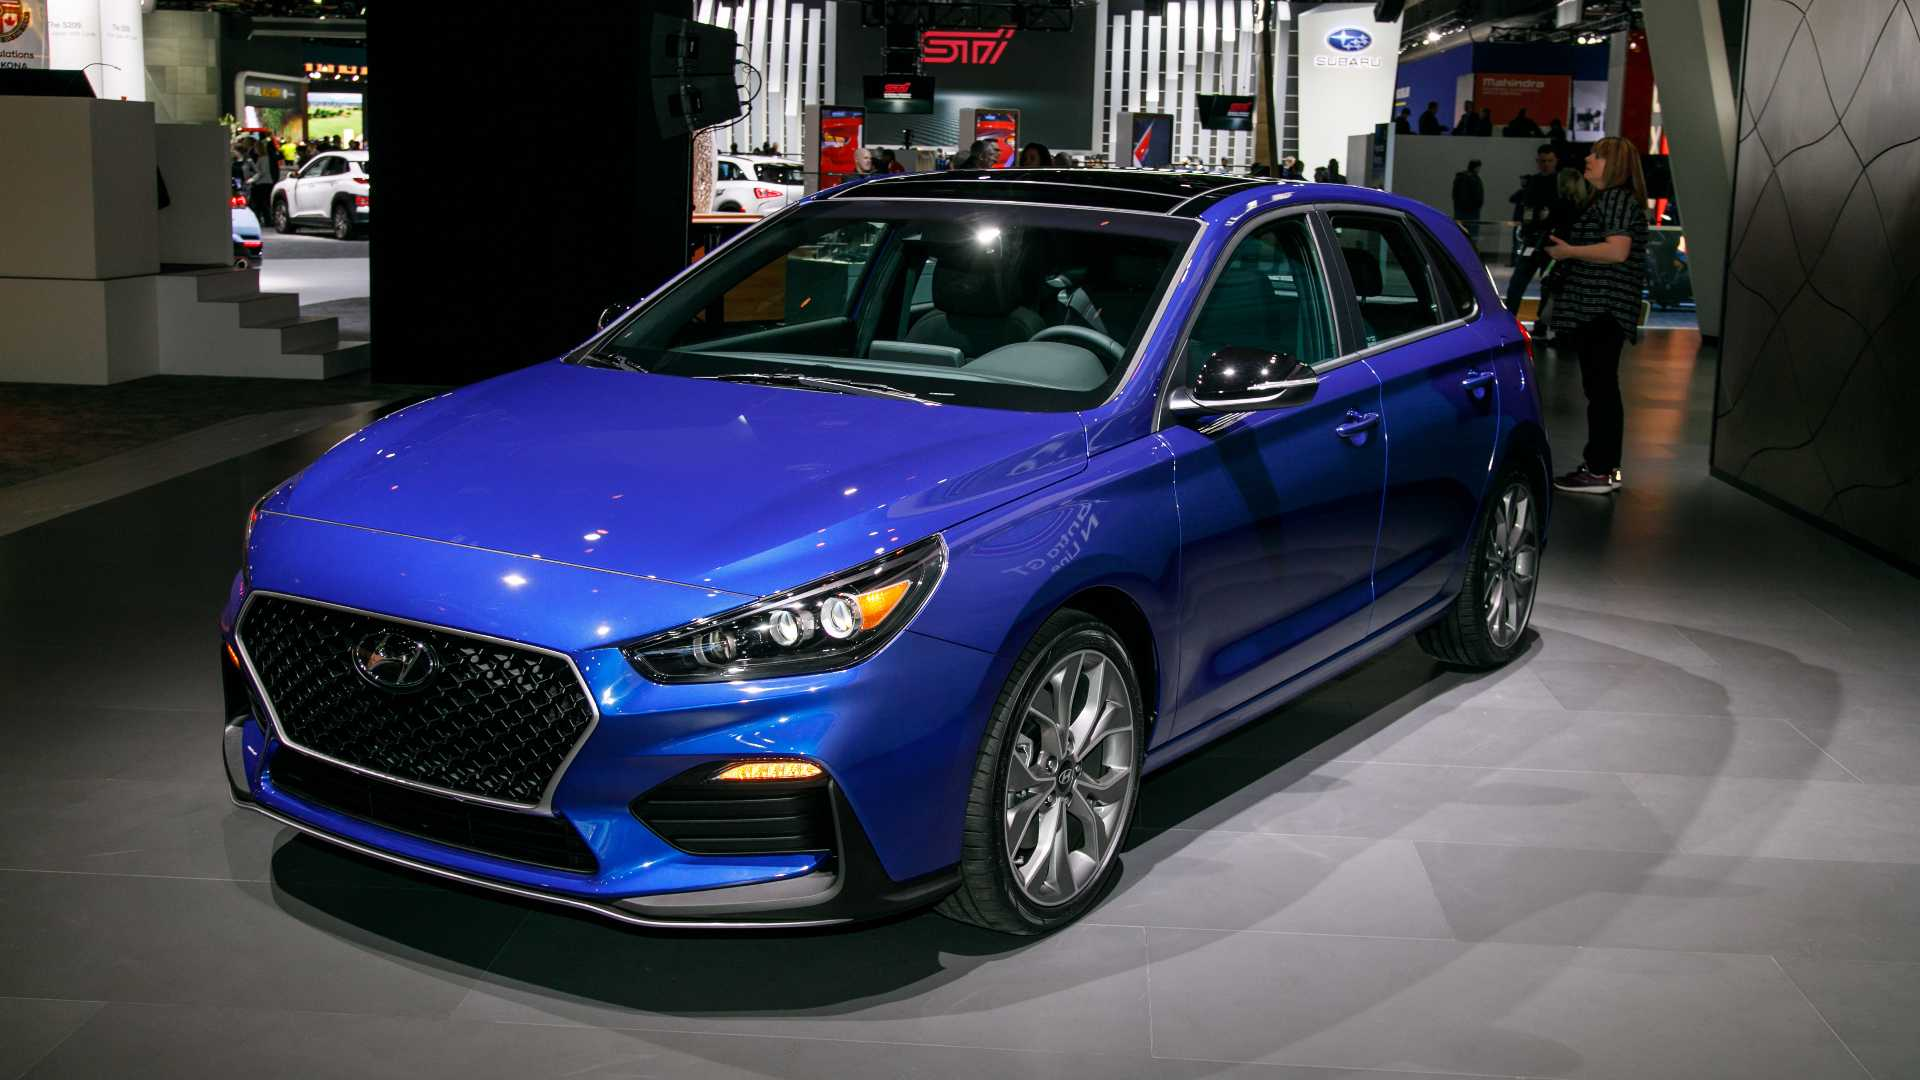 74 A 2020 Hyundai Elantra Gt Redesign and Review